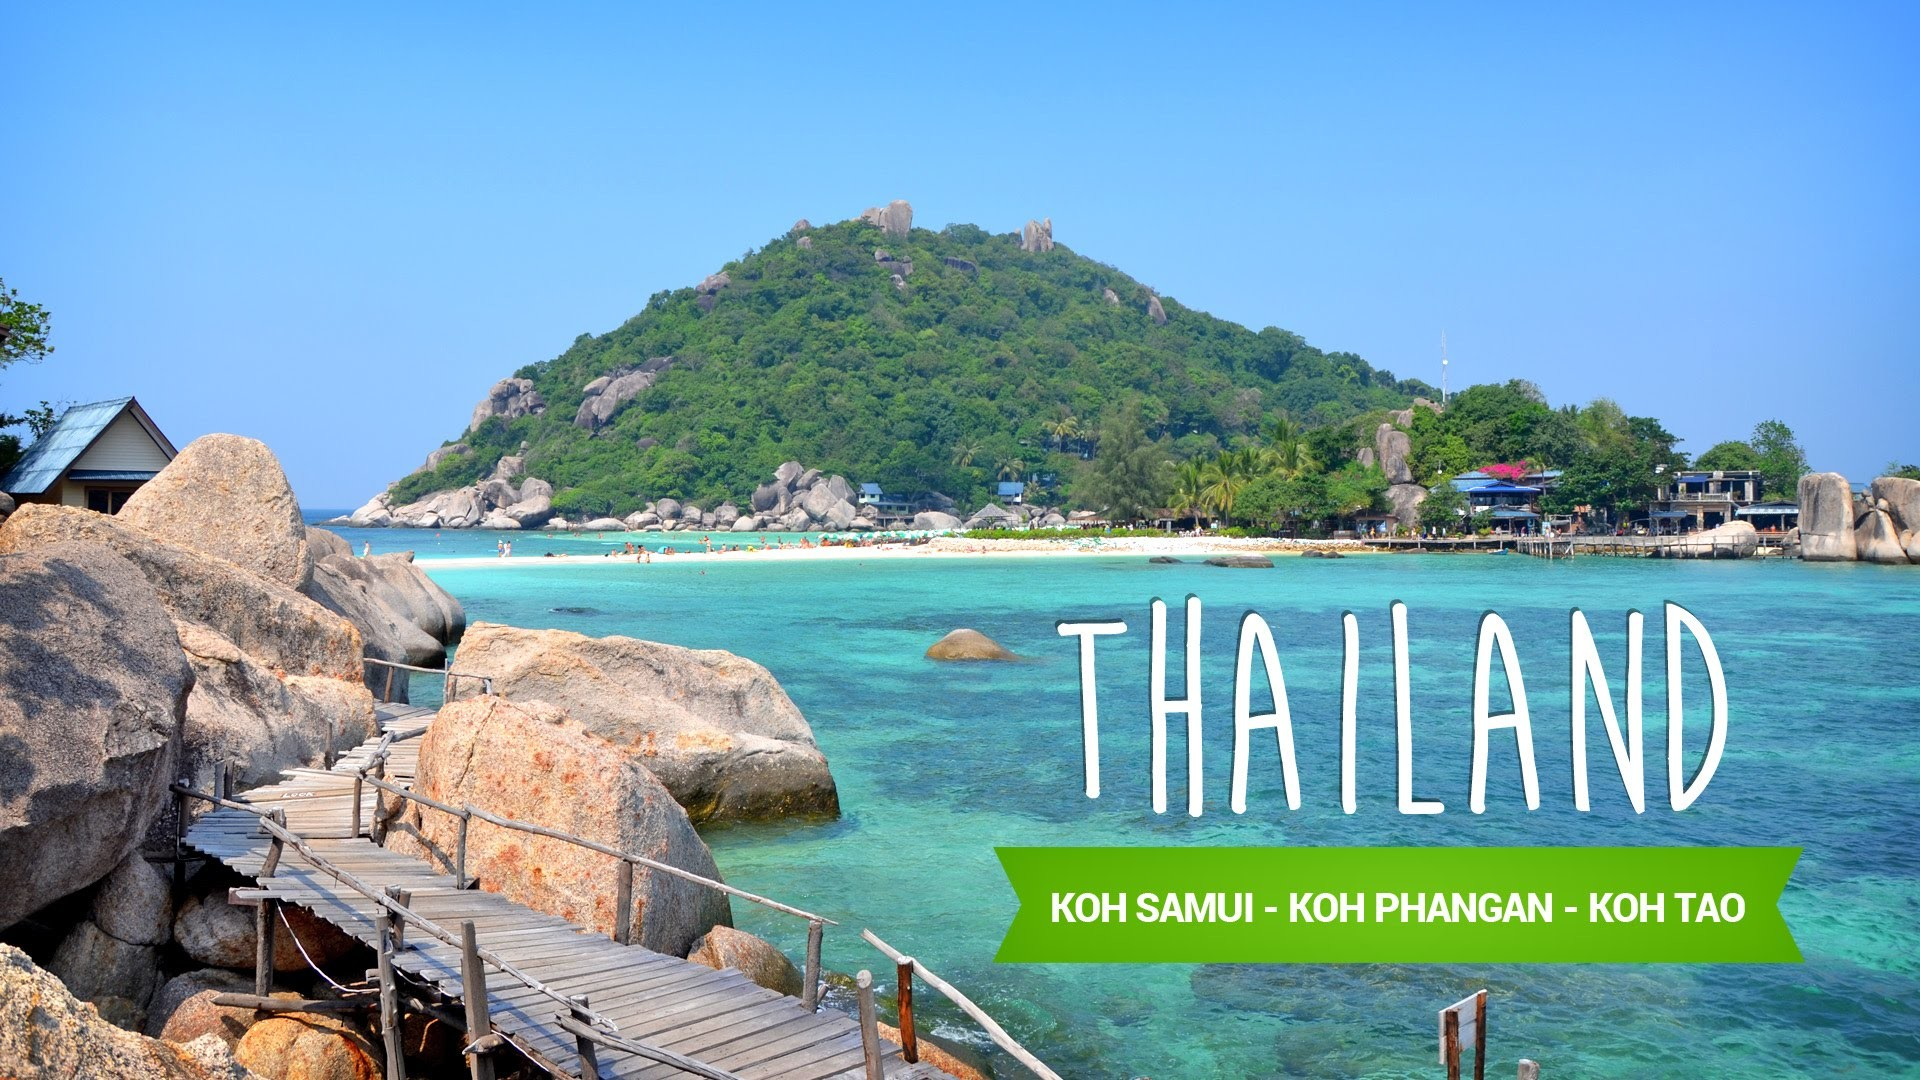 1920x1080 Thailand Backpacking Trip 2015 - Koh Samui, Koh Phangan, Koh Tao - YouTube